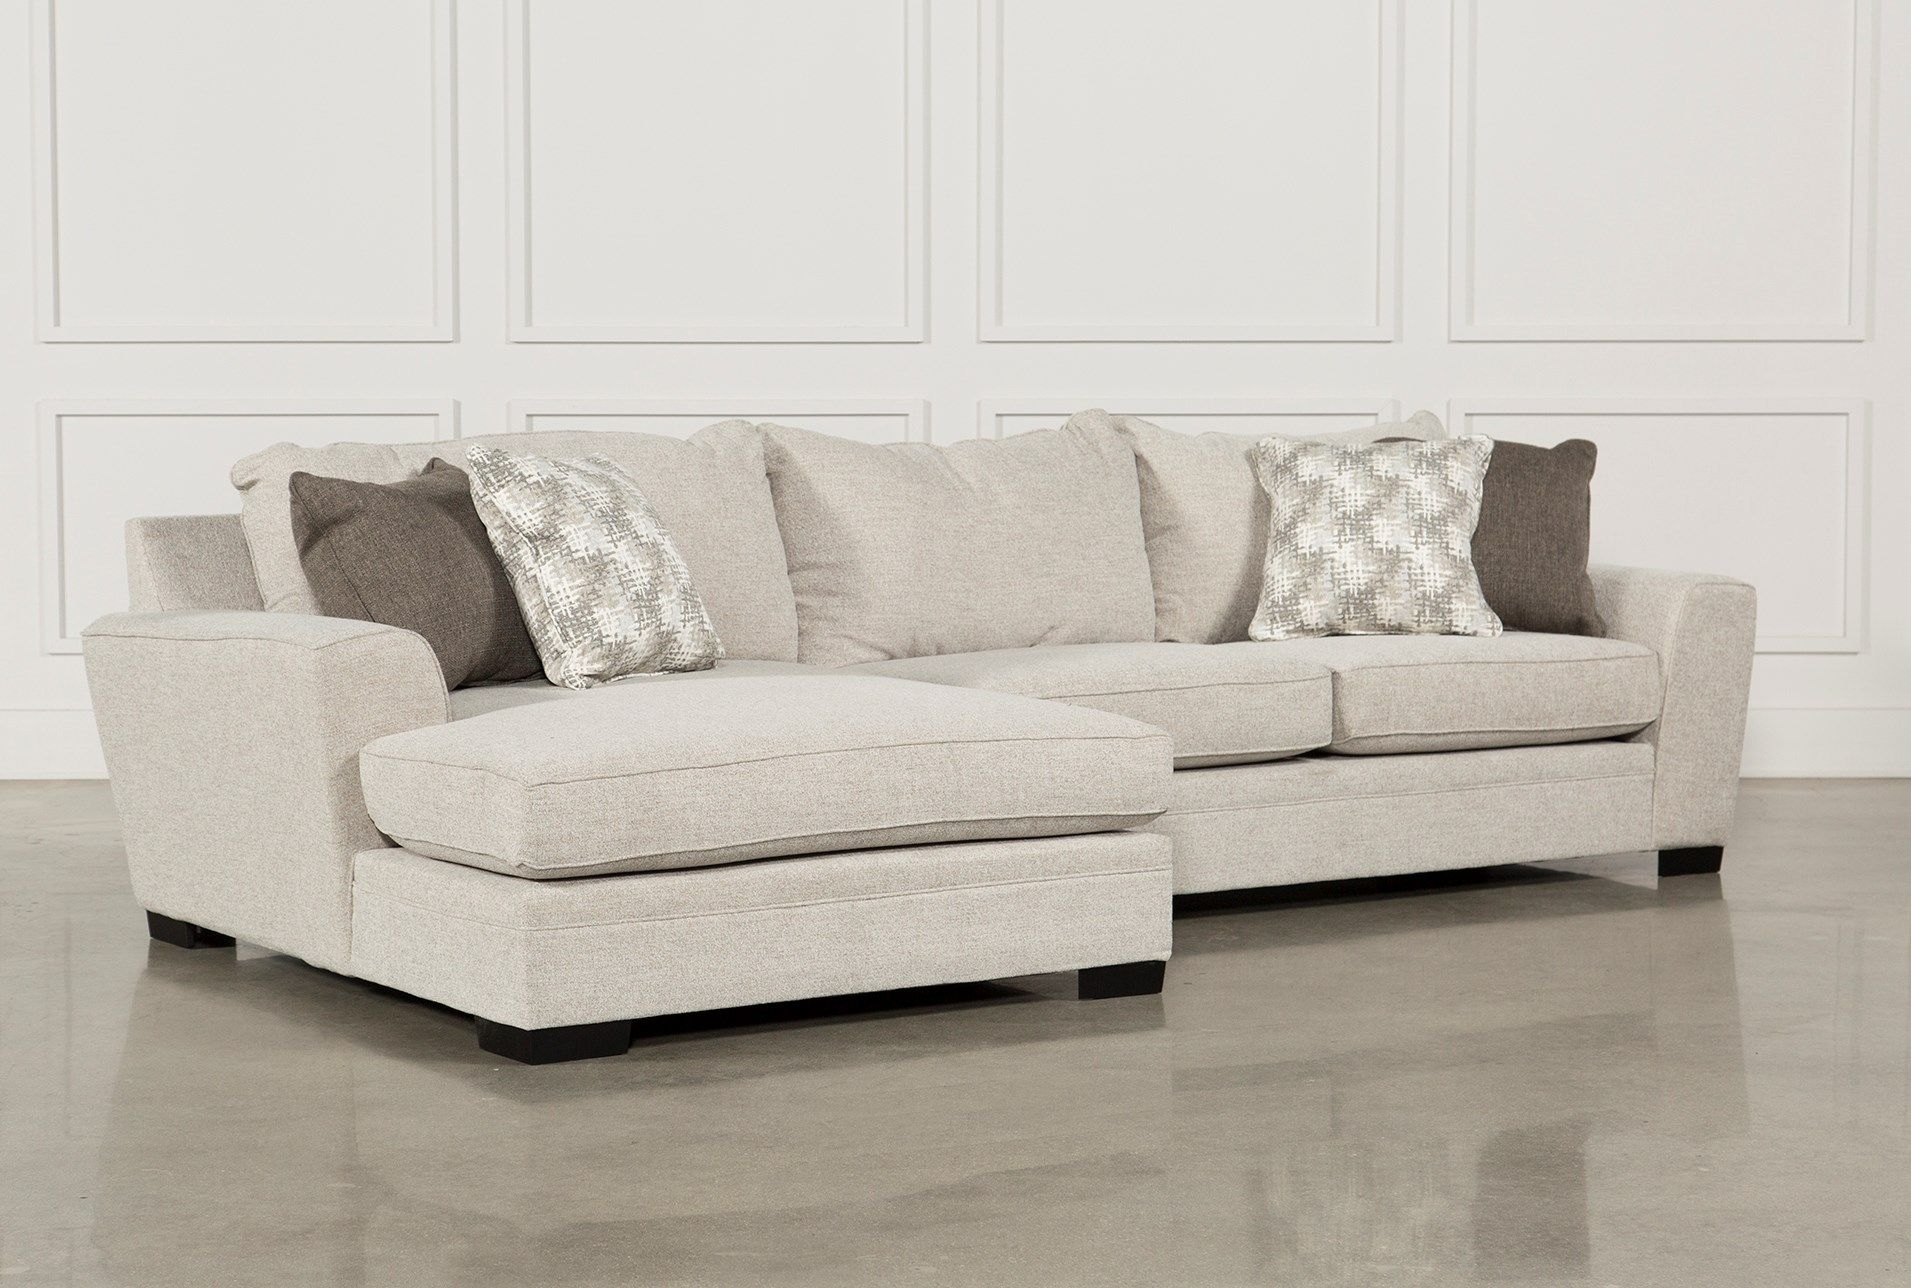 Delano 2 Piece Sectional W/laf Oversized Chaise | Pinterest | Living With Mesa Foam 2 Piece Sectionals (Image 5 of 25)